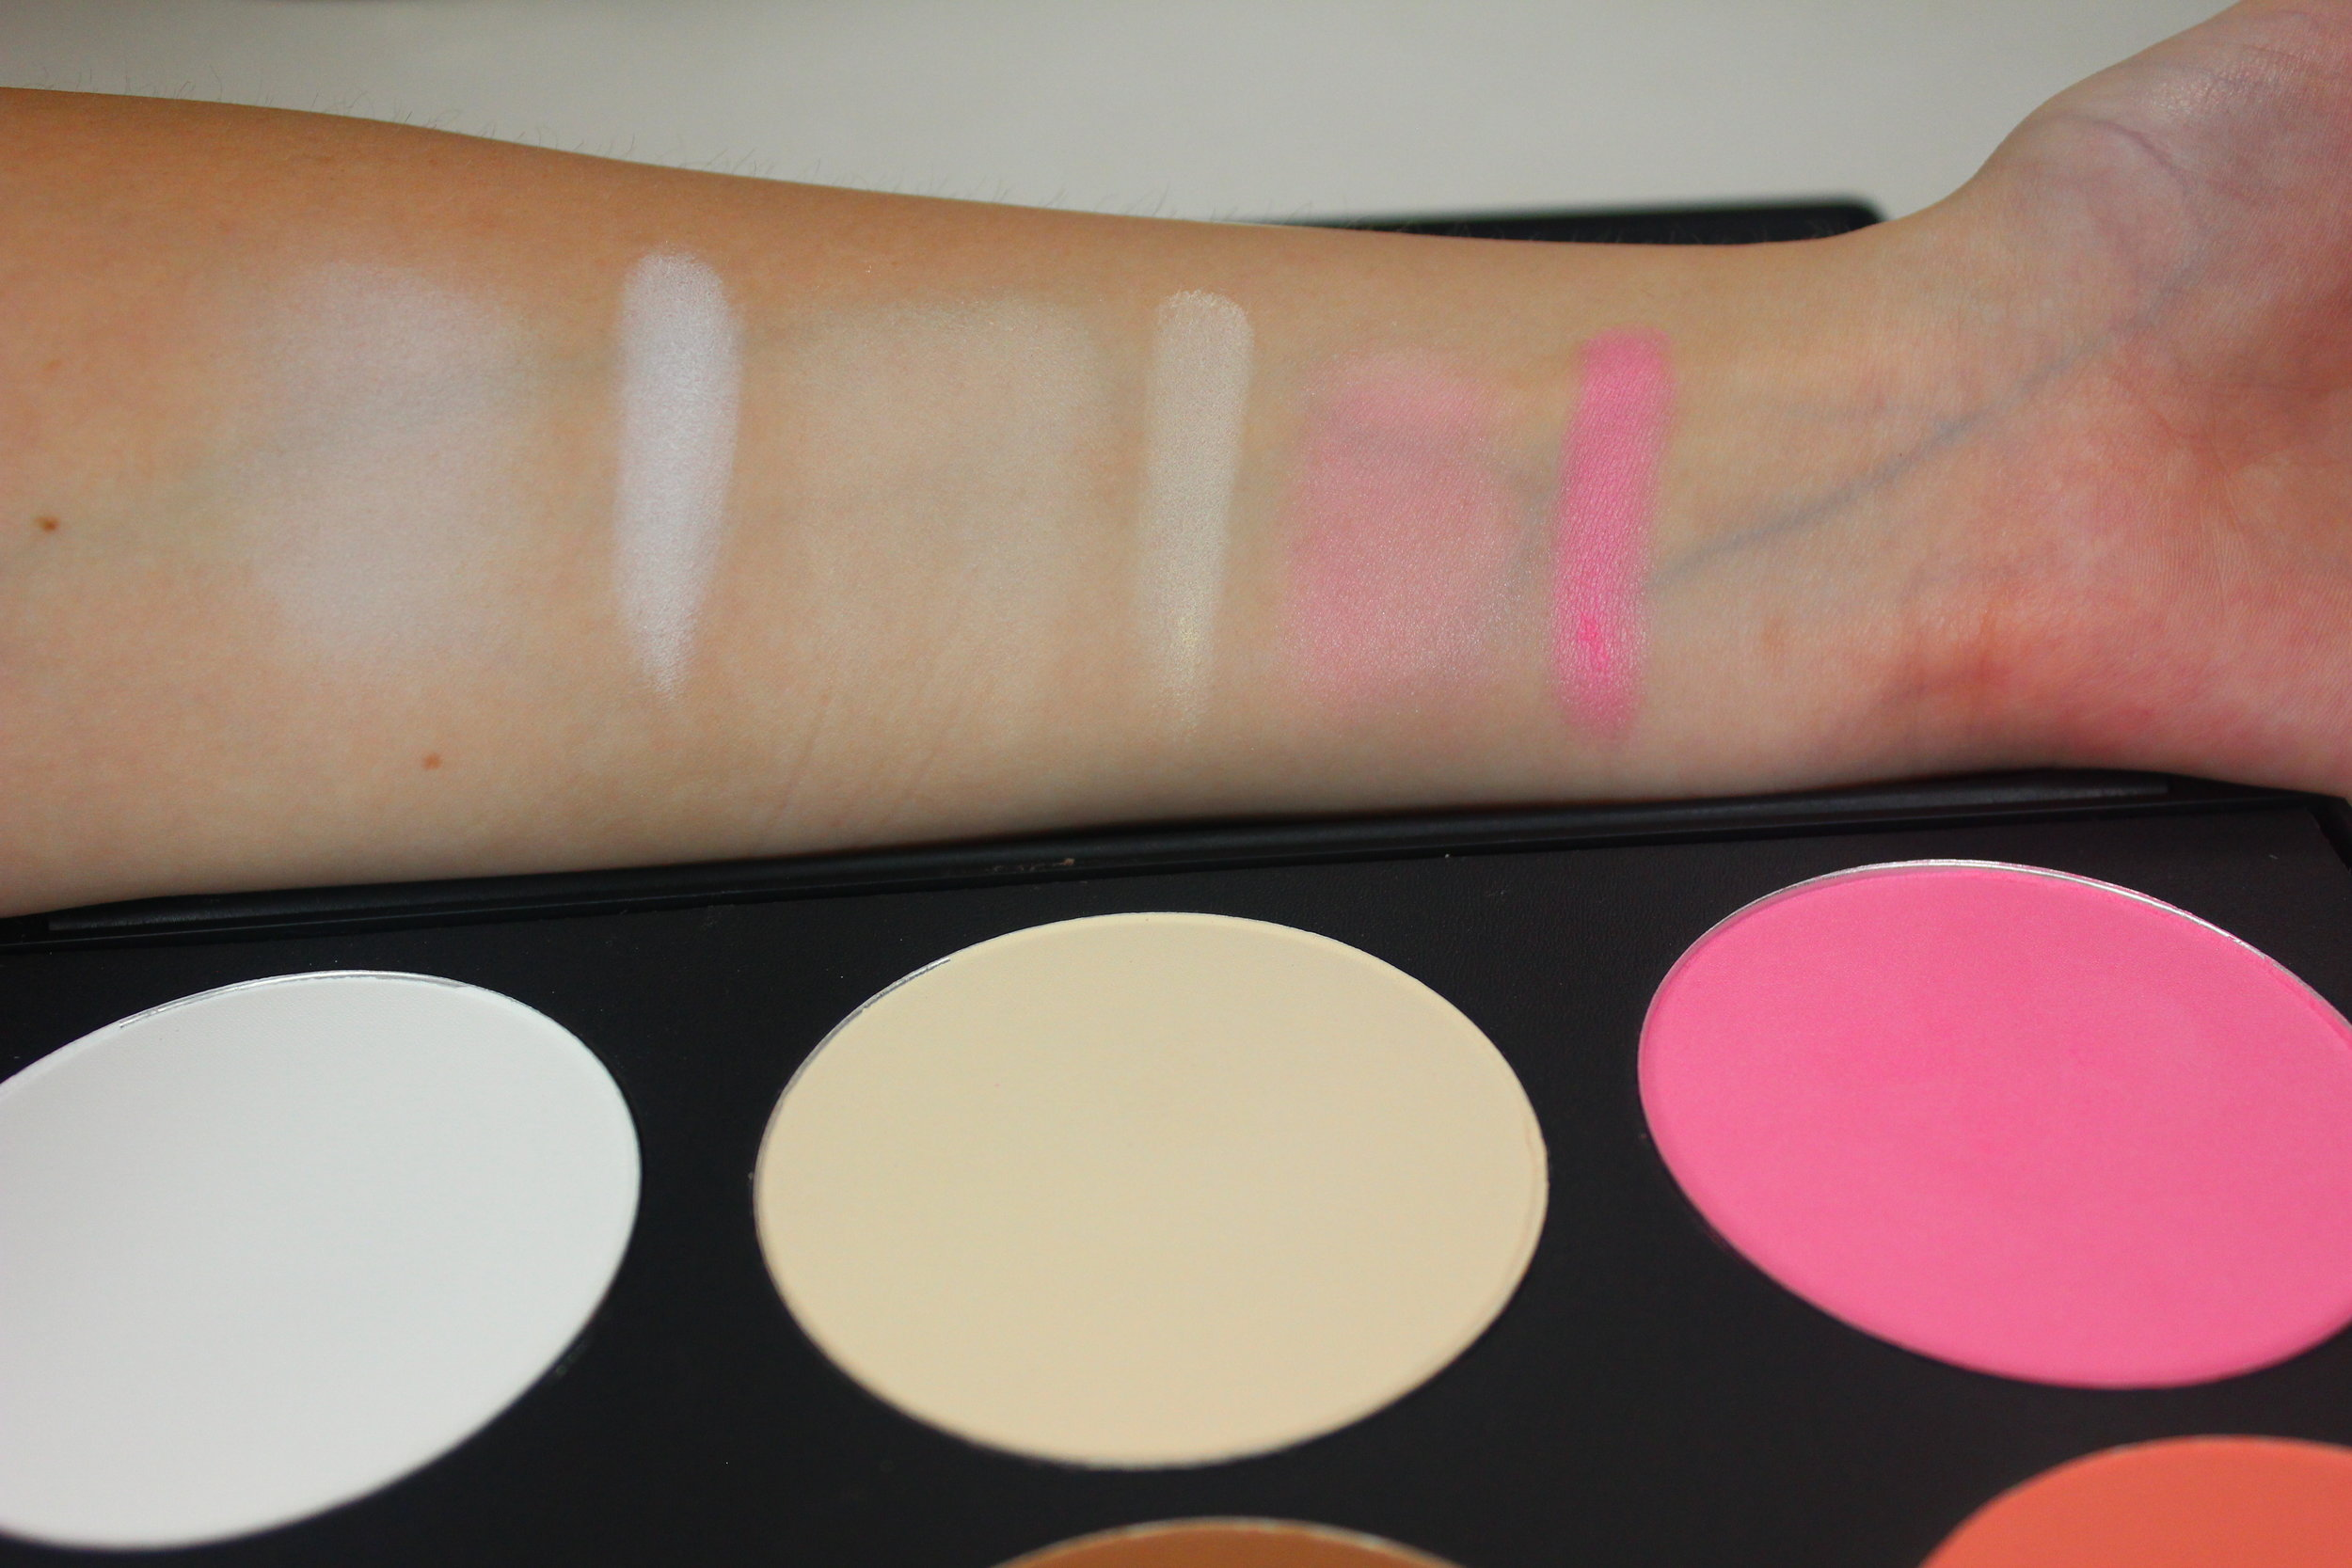 Sedona Lace Contour and Blush Palette swatches 1 highlight and blush